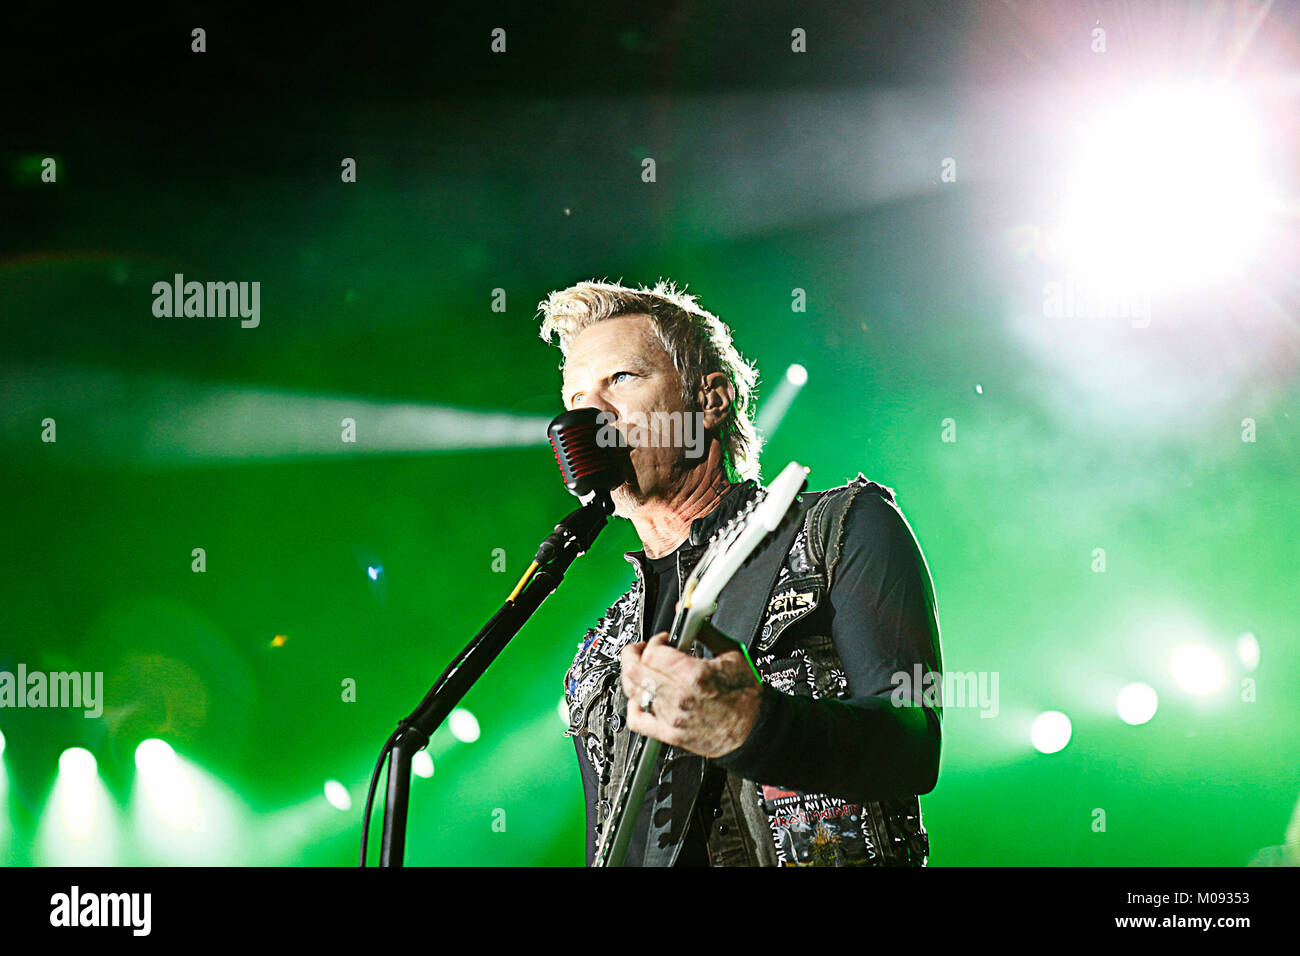 The American heavy metal band Metallica performs a live concert at